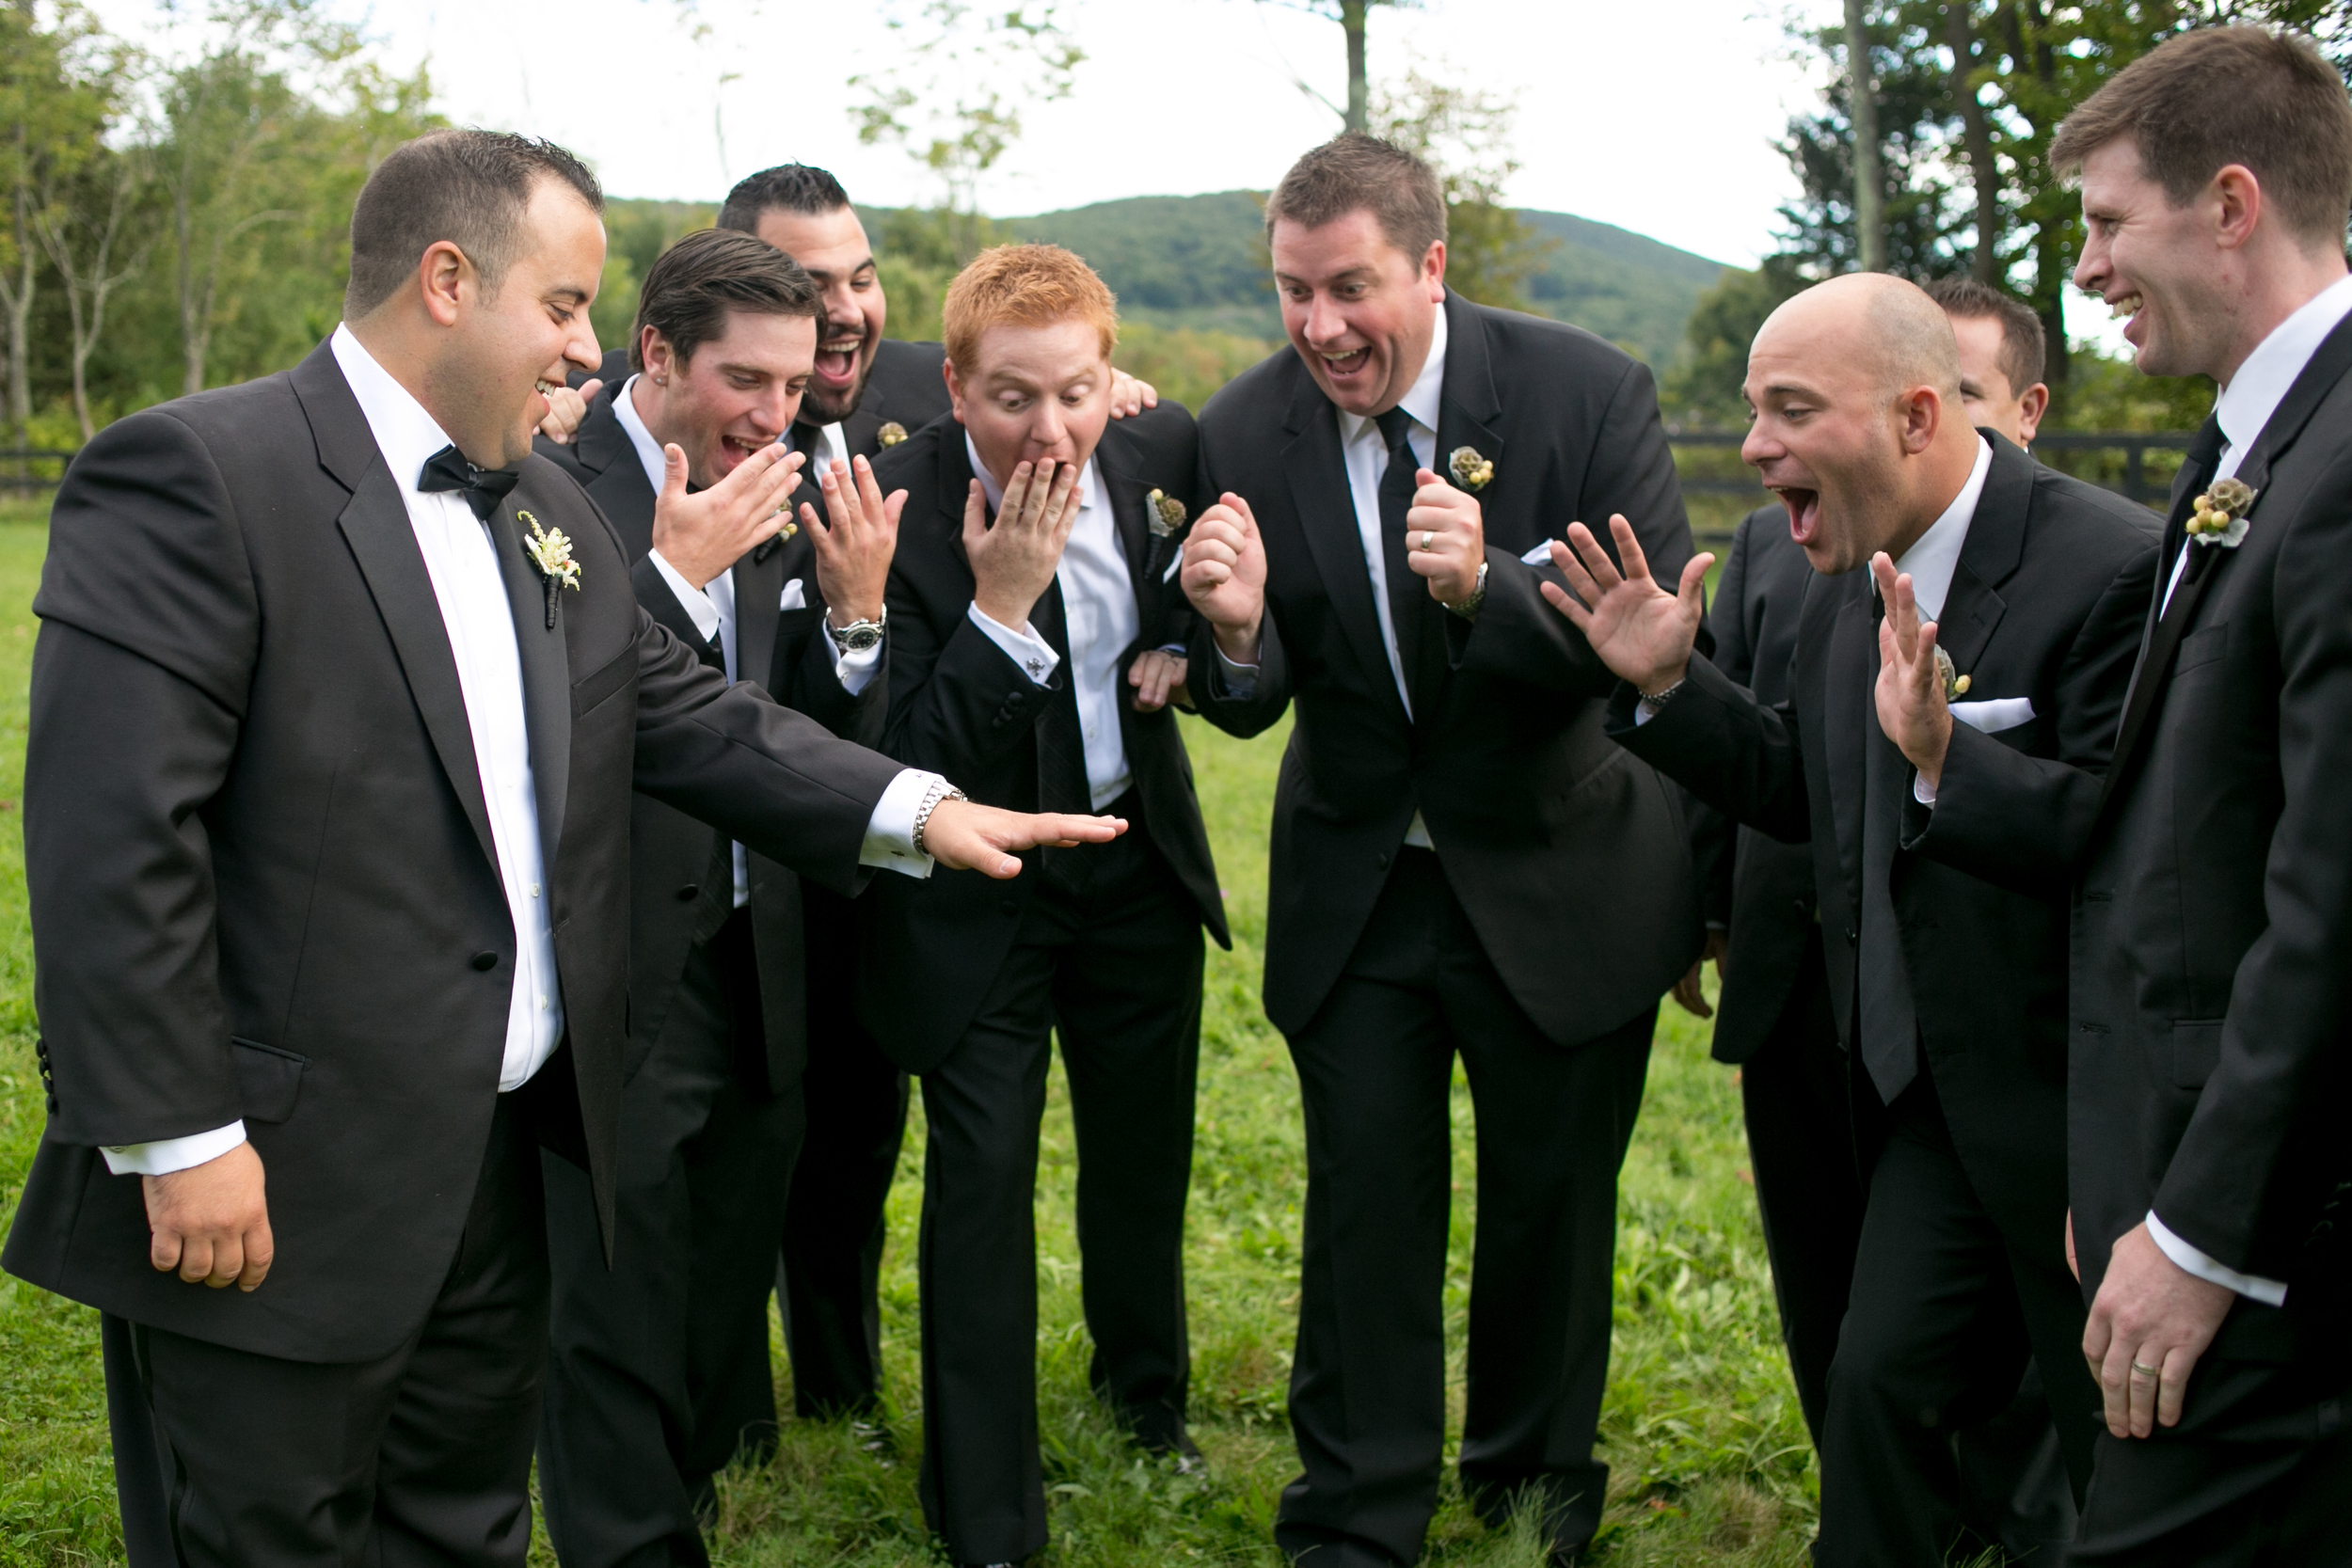 groomsmen wedding photography  0001